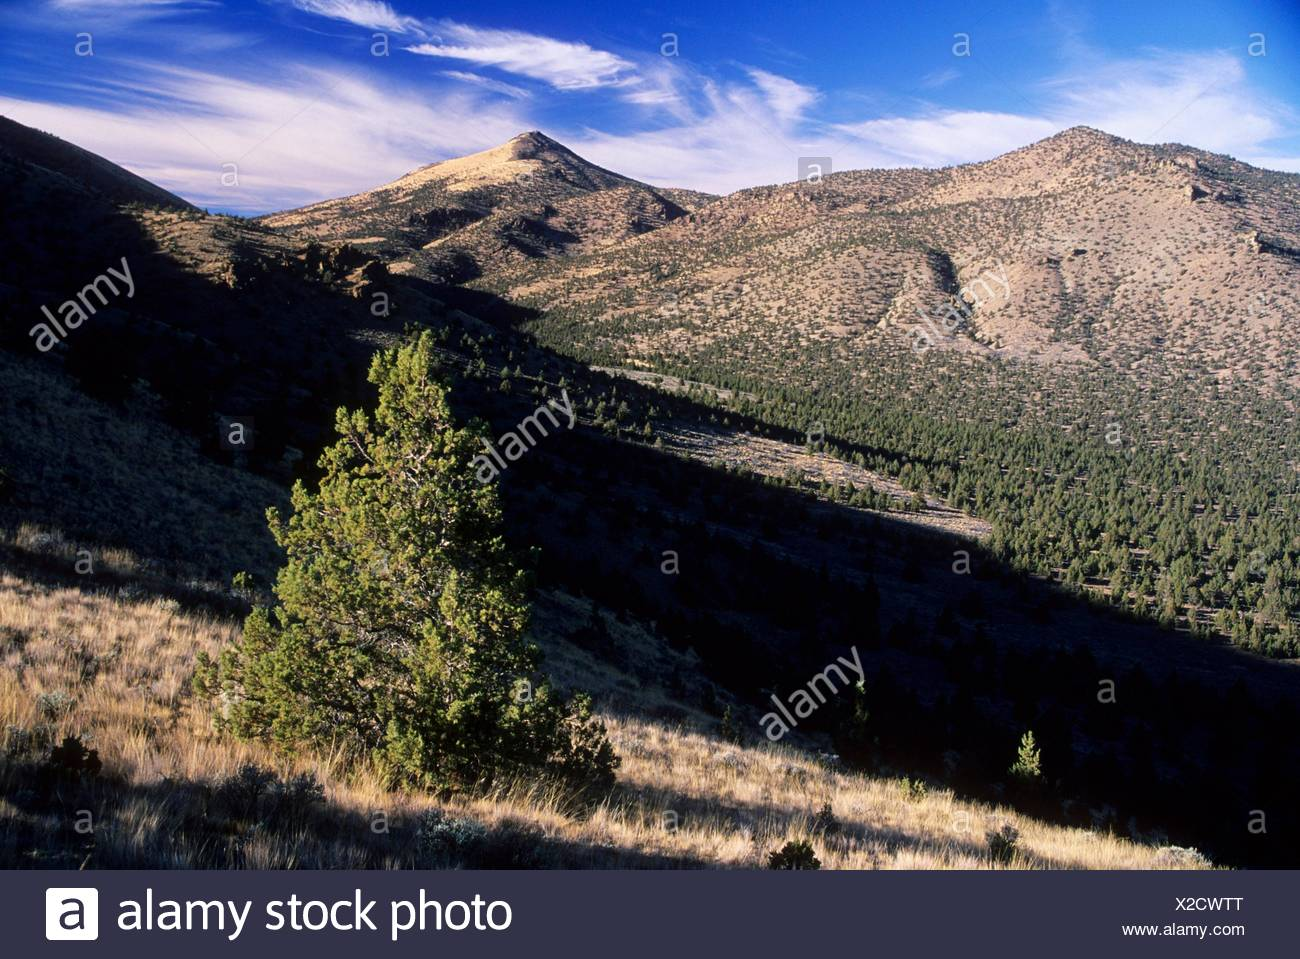 Juniper Canyon Imágenes De Stock & Juniper Canyon Fotos De Stock - Alamy